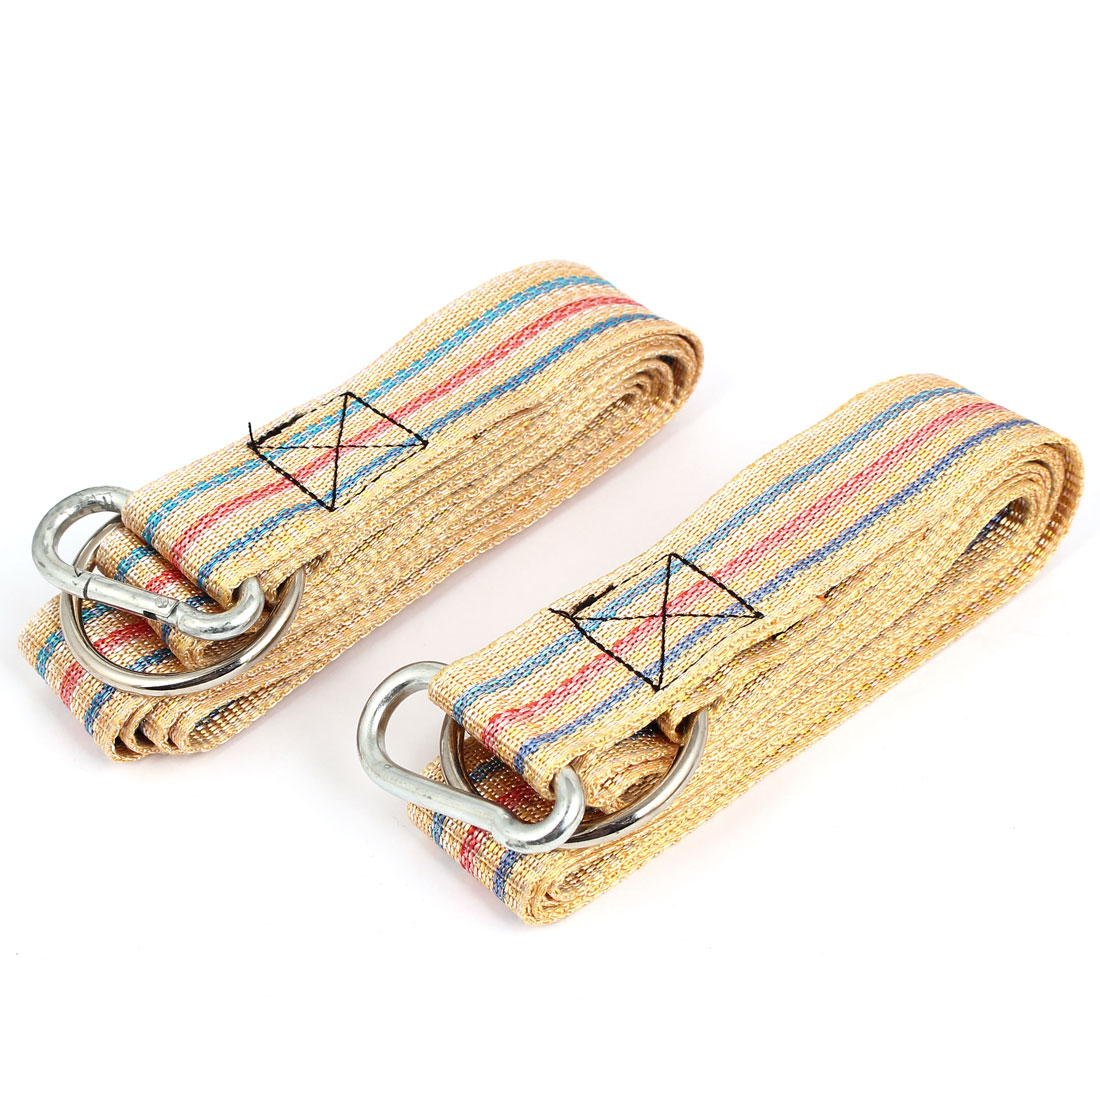 2Pcs Carabiner Hook Clip Stripe Pattern Outdoor Nylon Hanging Hammock Belt Strap Beige 250cm x 3.8cm